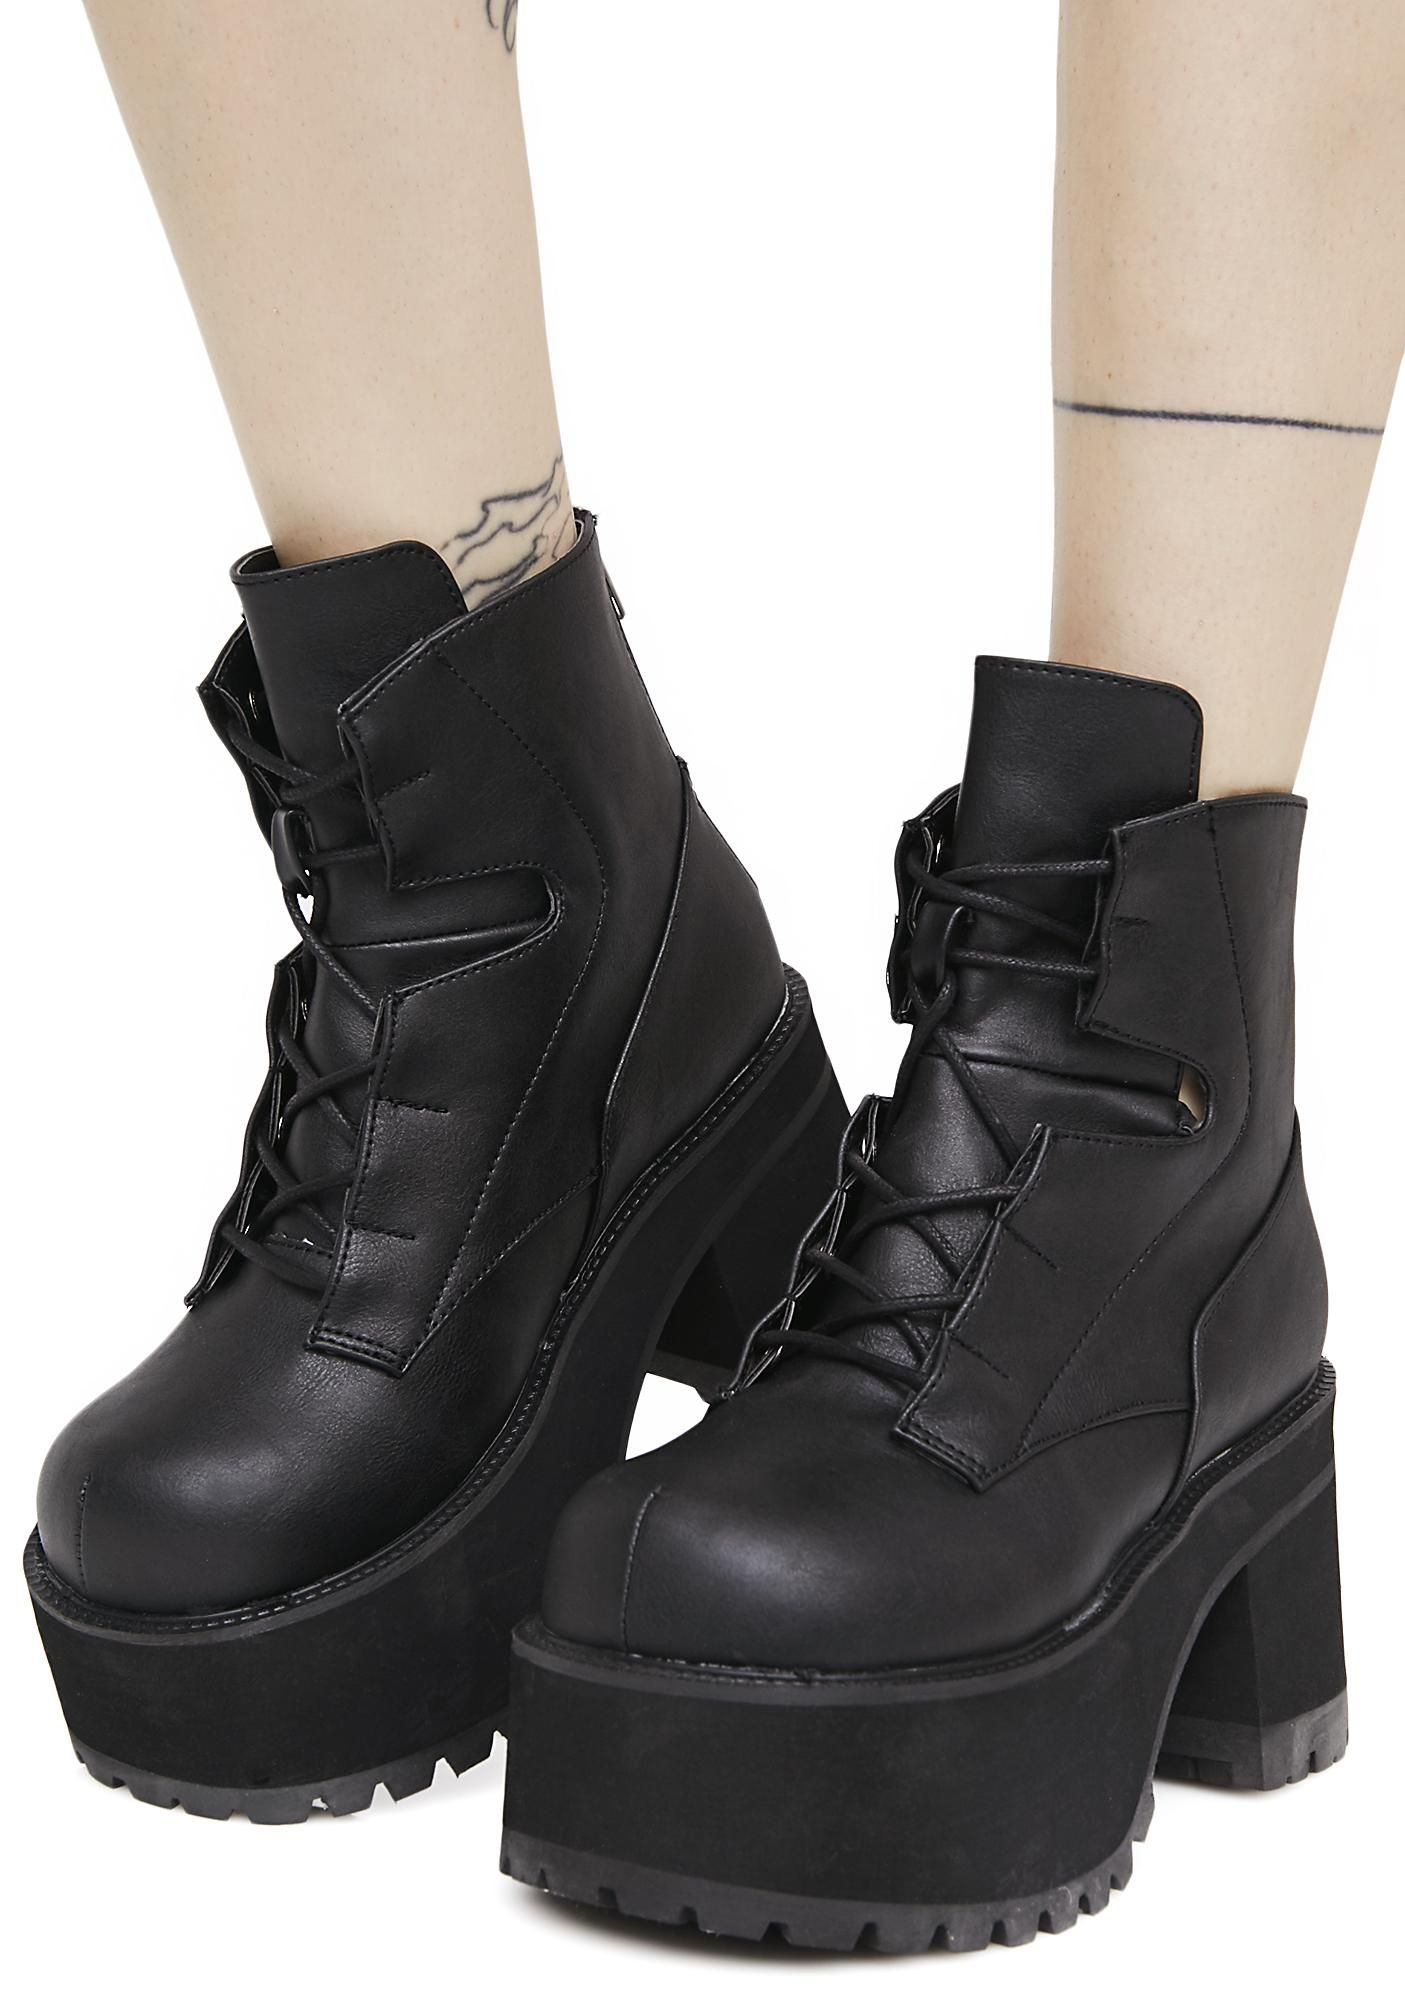 5ca45fbc3f89 Demonia Earthshatter Platform Boots are ready to break this thing wide  open